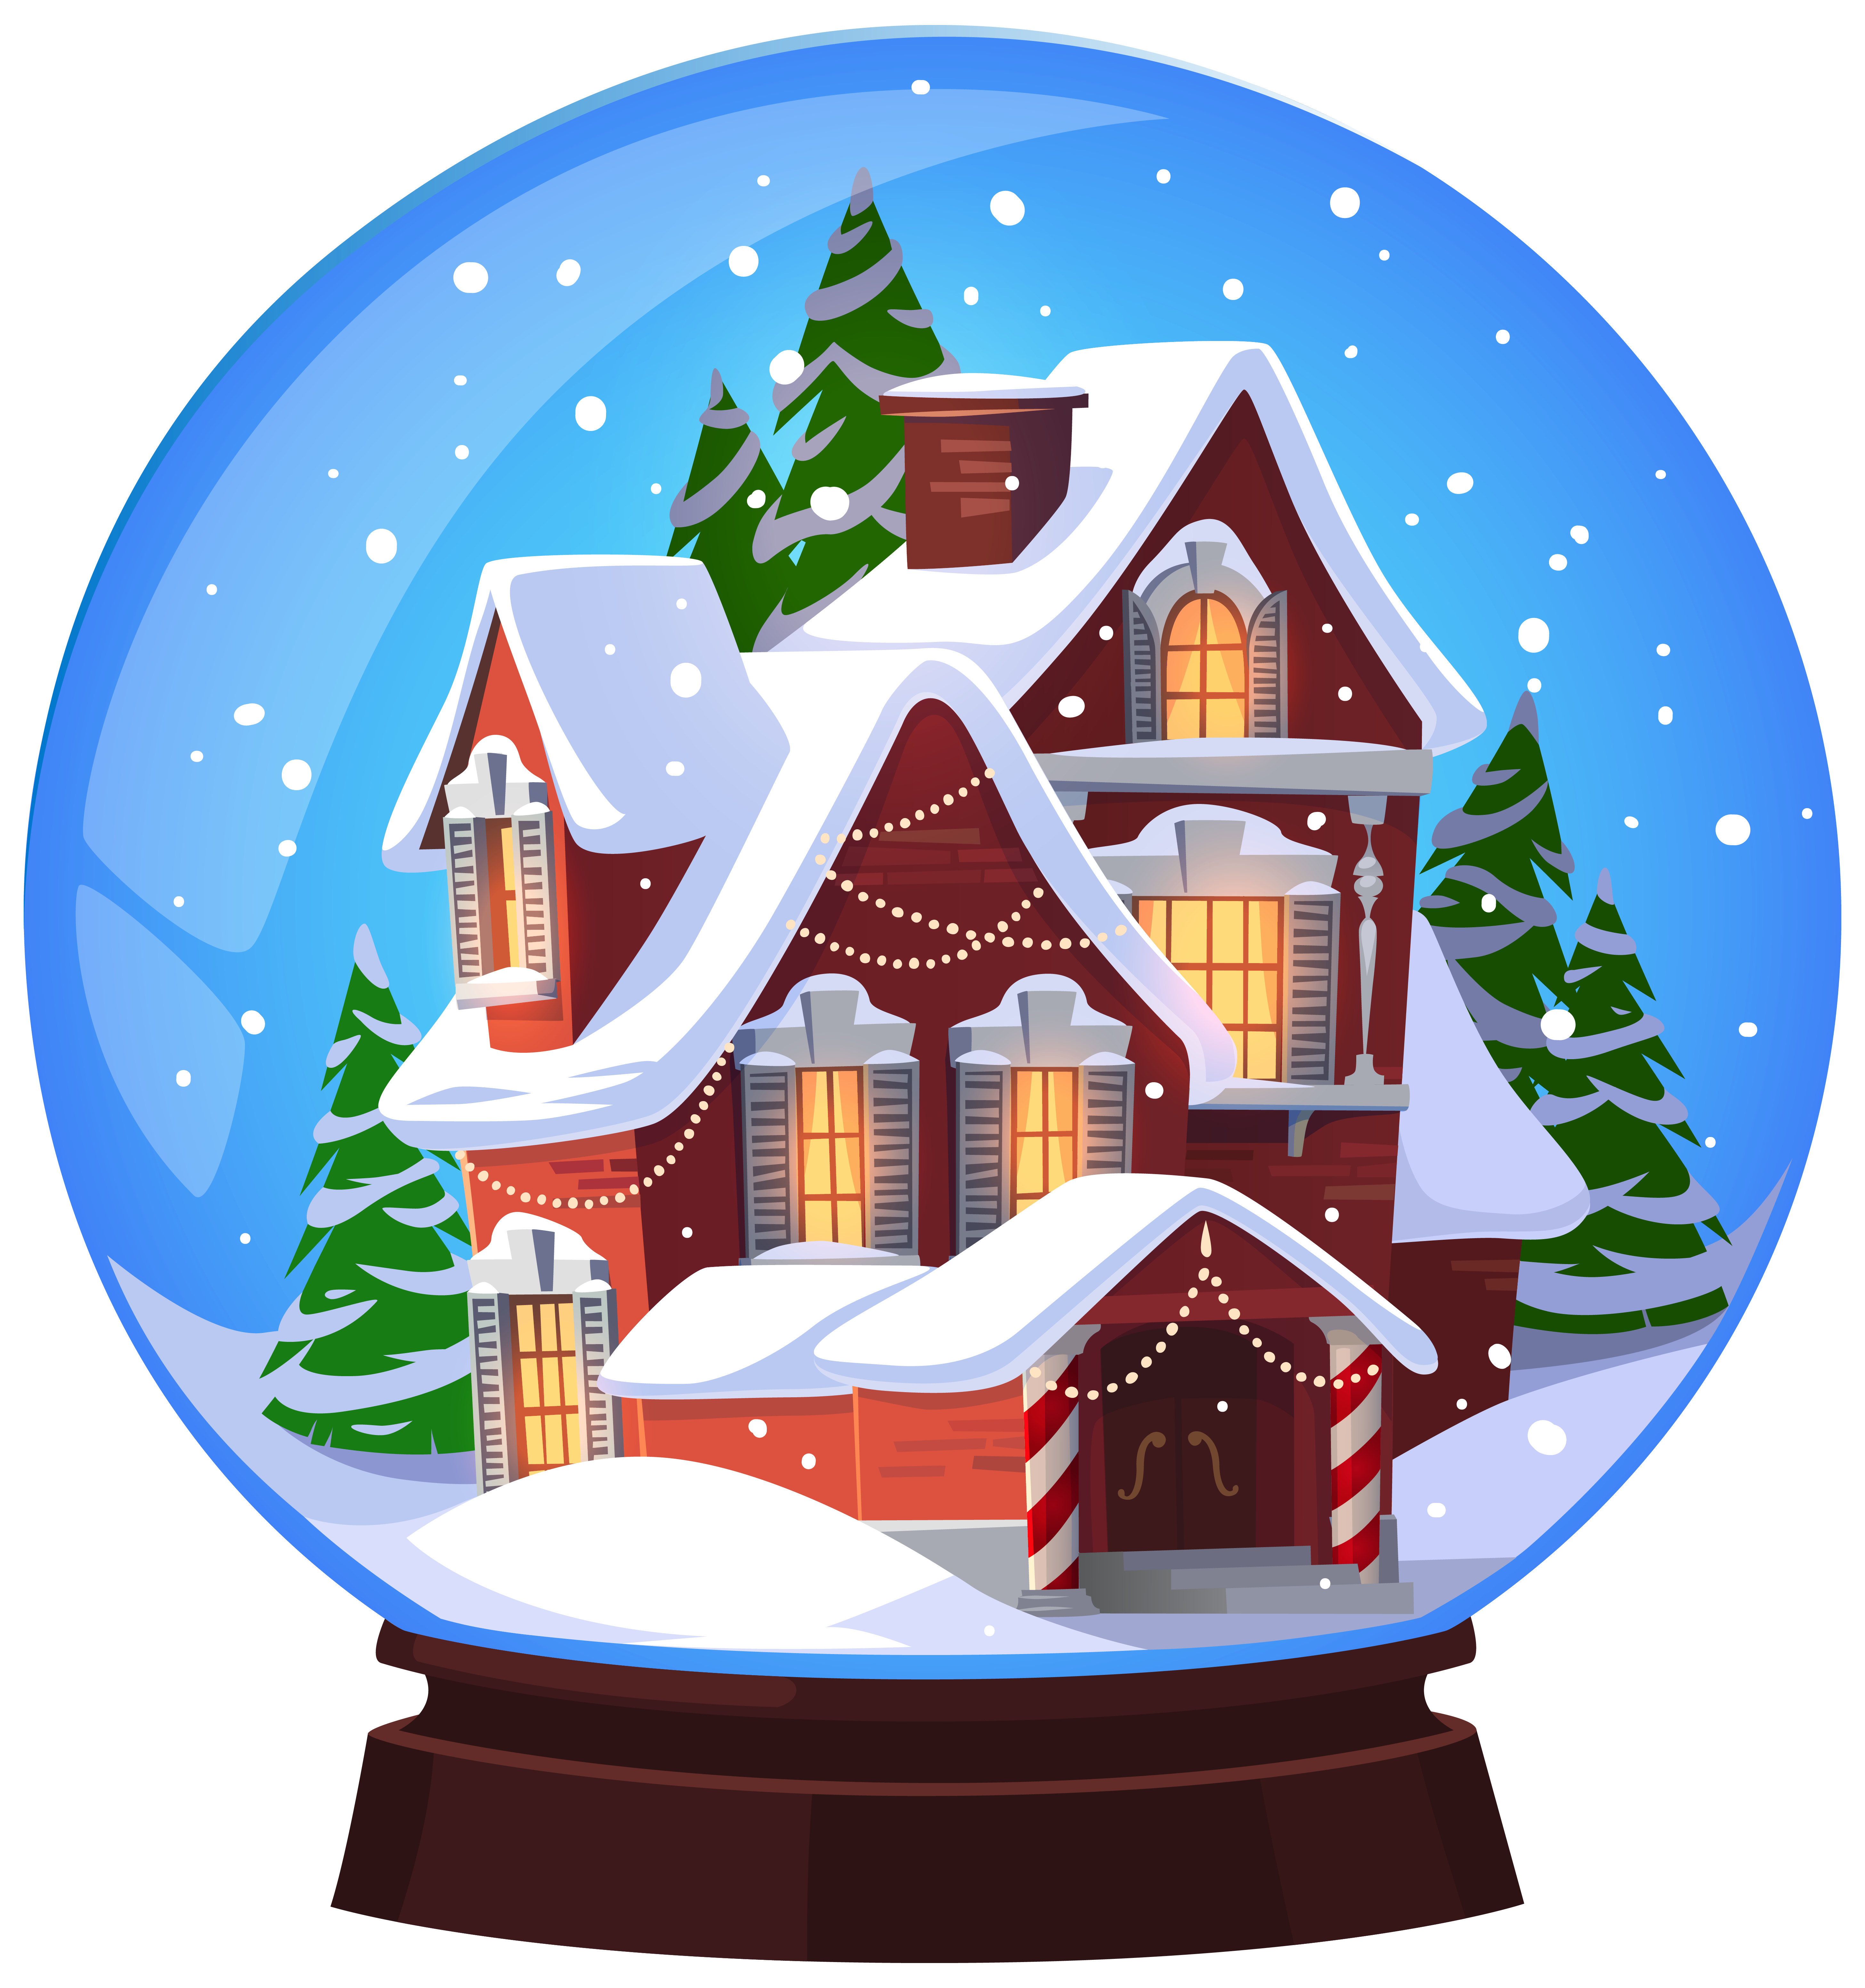 Home clipart christmas. House snowglobe transparent png